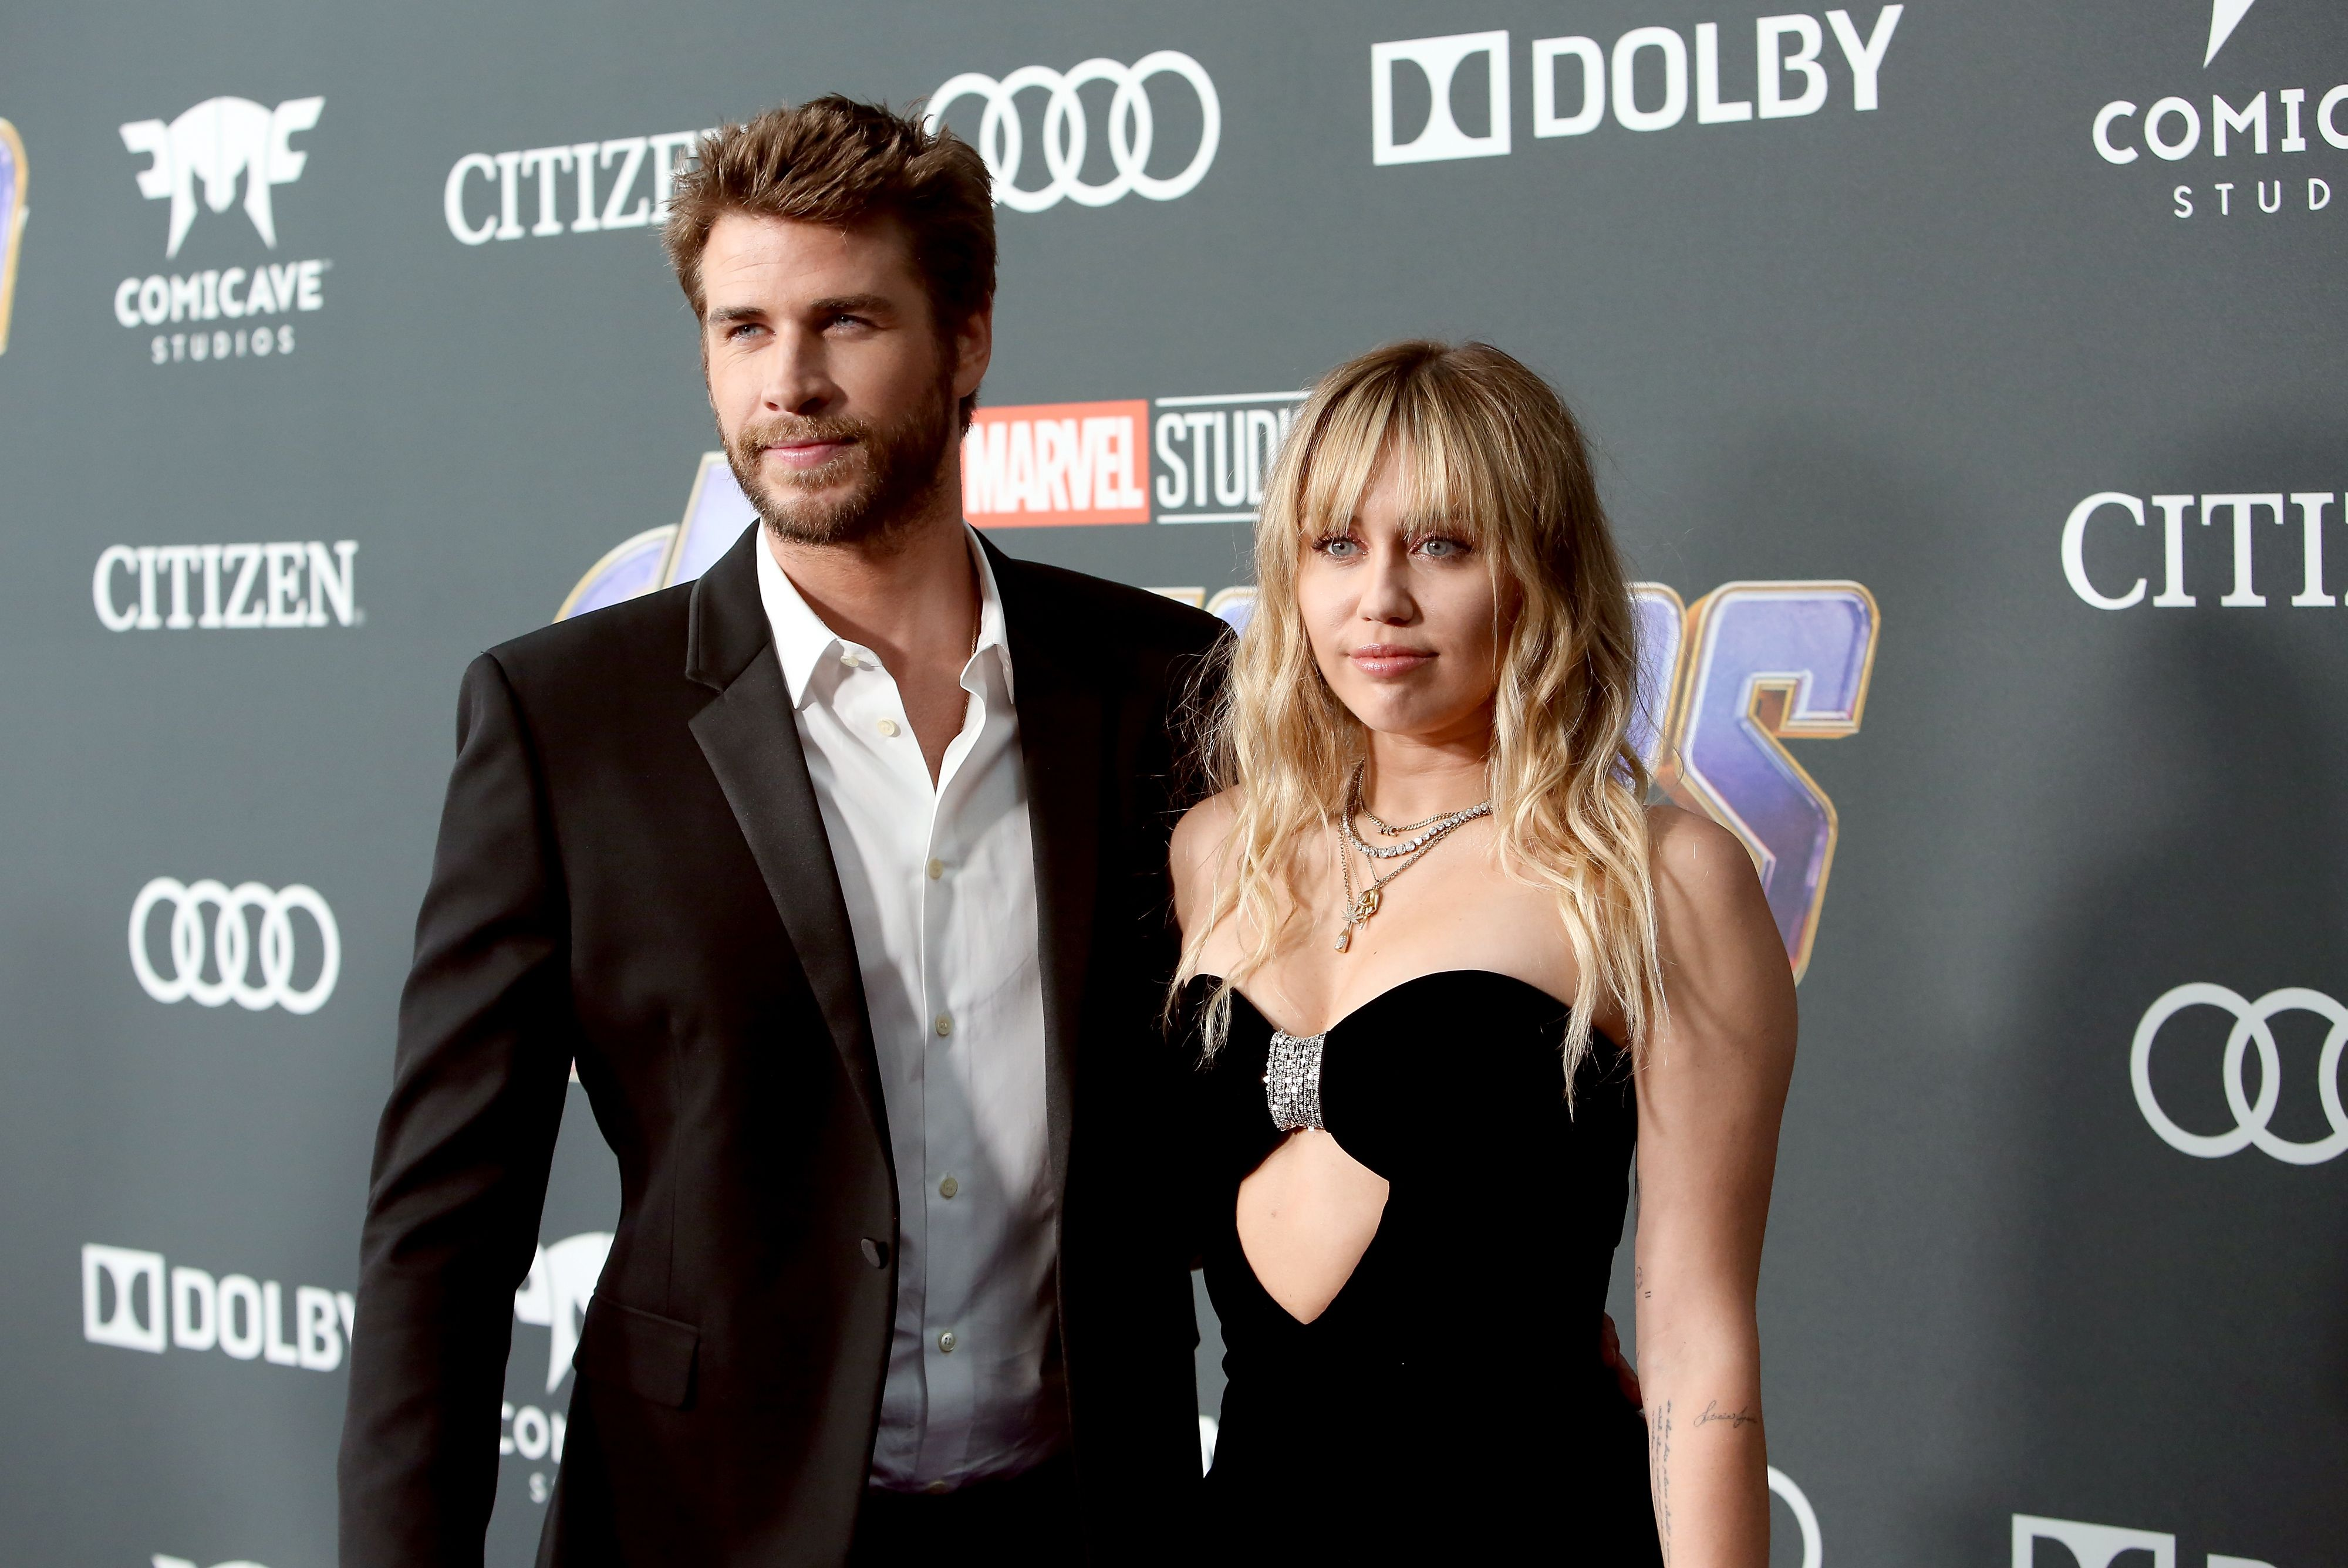 Miley Cyrus Shuts Down Cheating Rumors Following Her Split from Liam Hemsworth